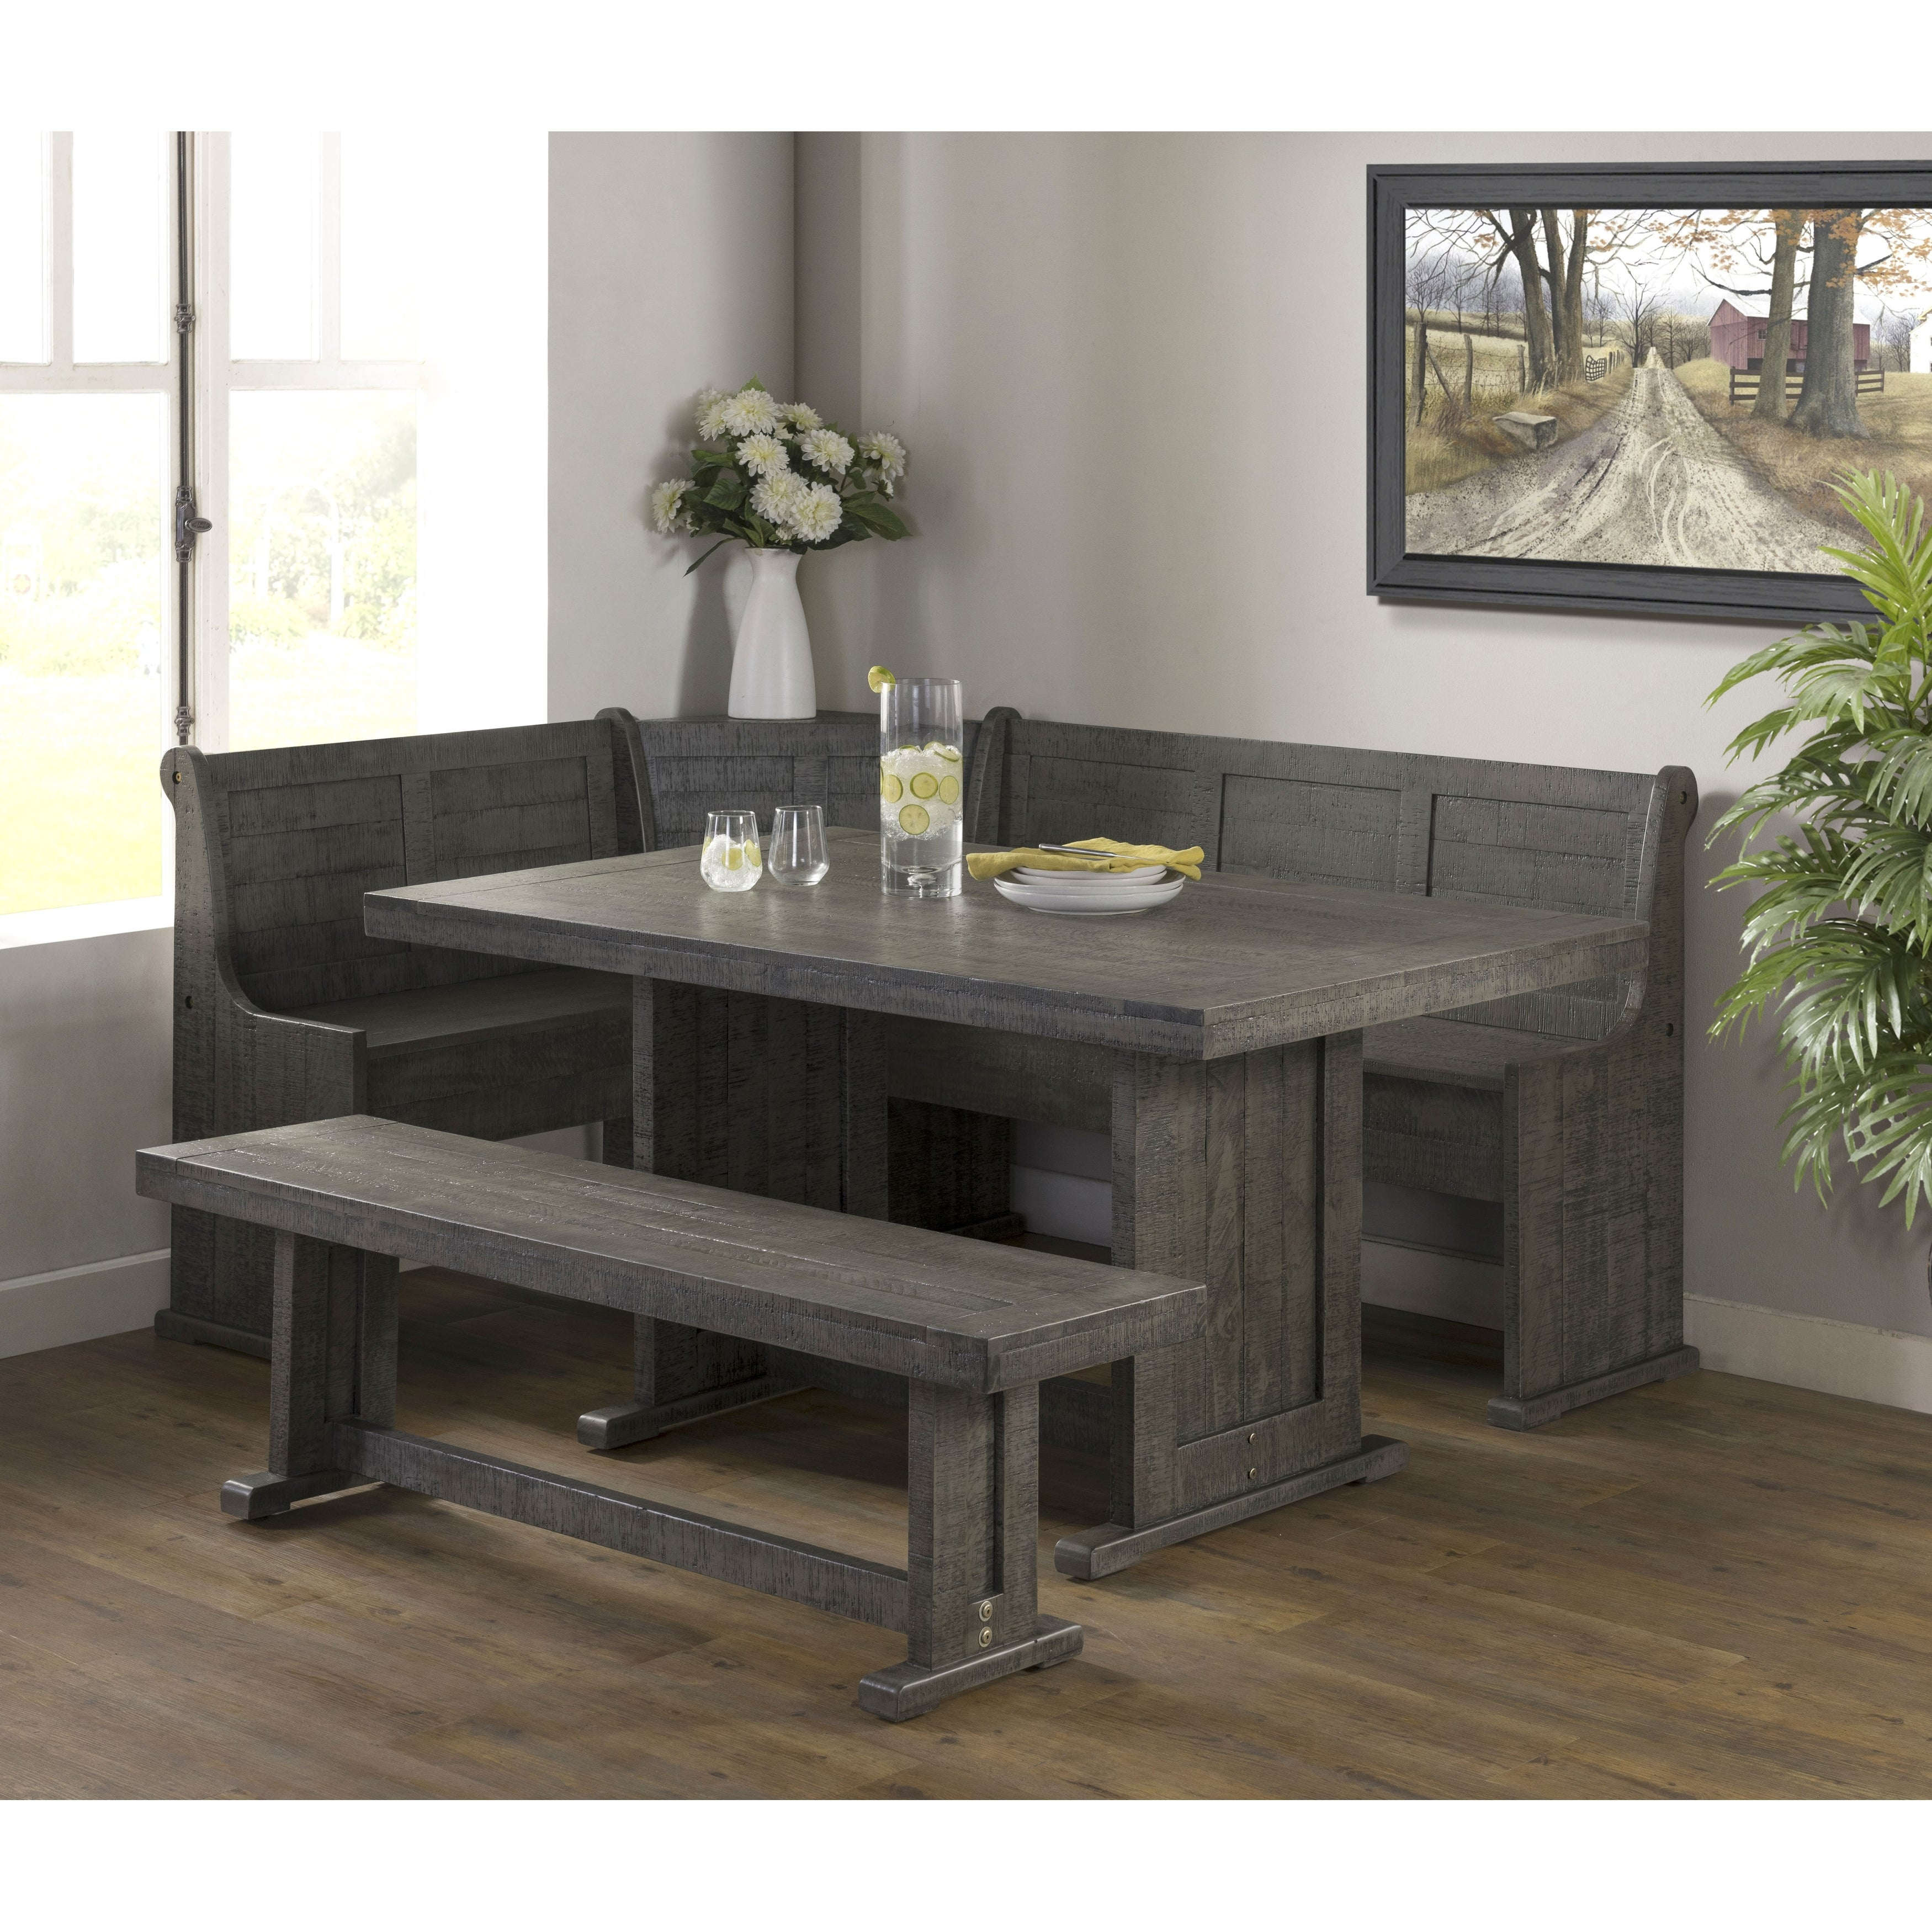 Picture of: Industrial Charms Breakfast Nook Dining Set With Corner Bench Overstock 31937413